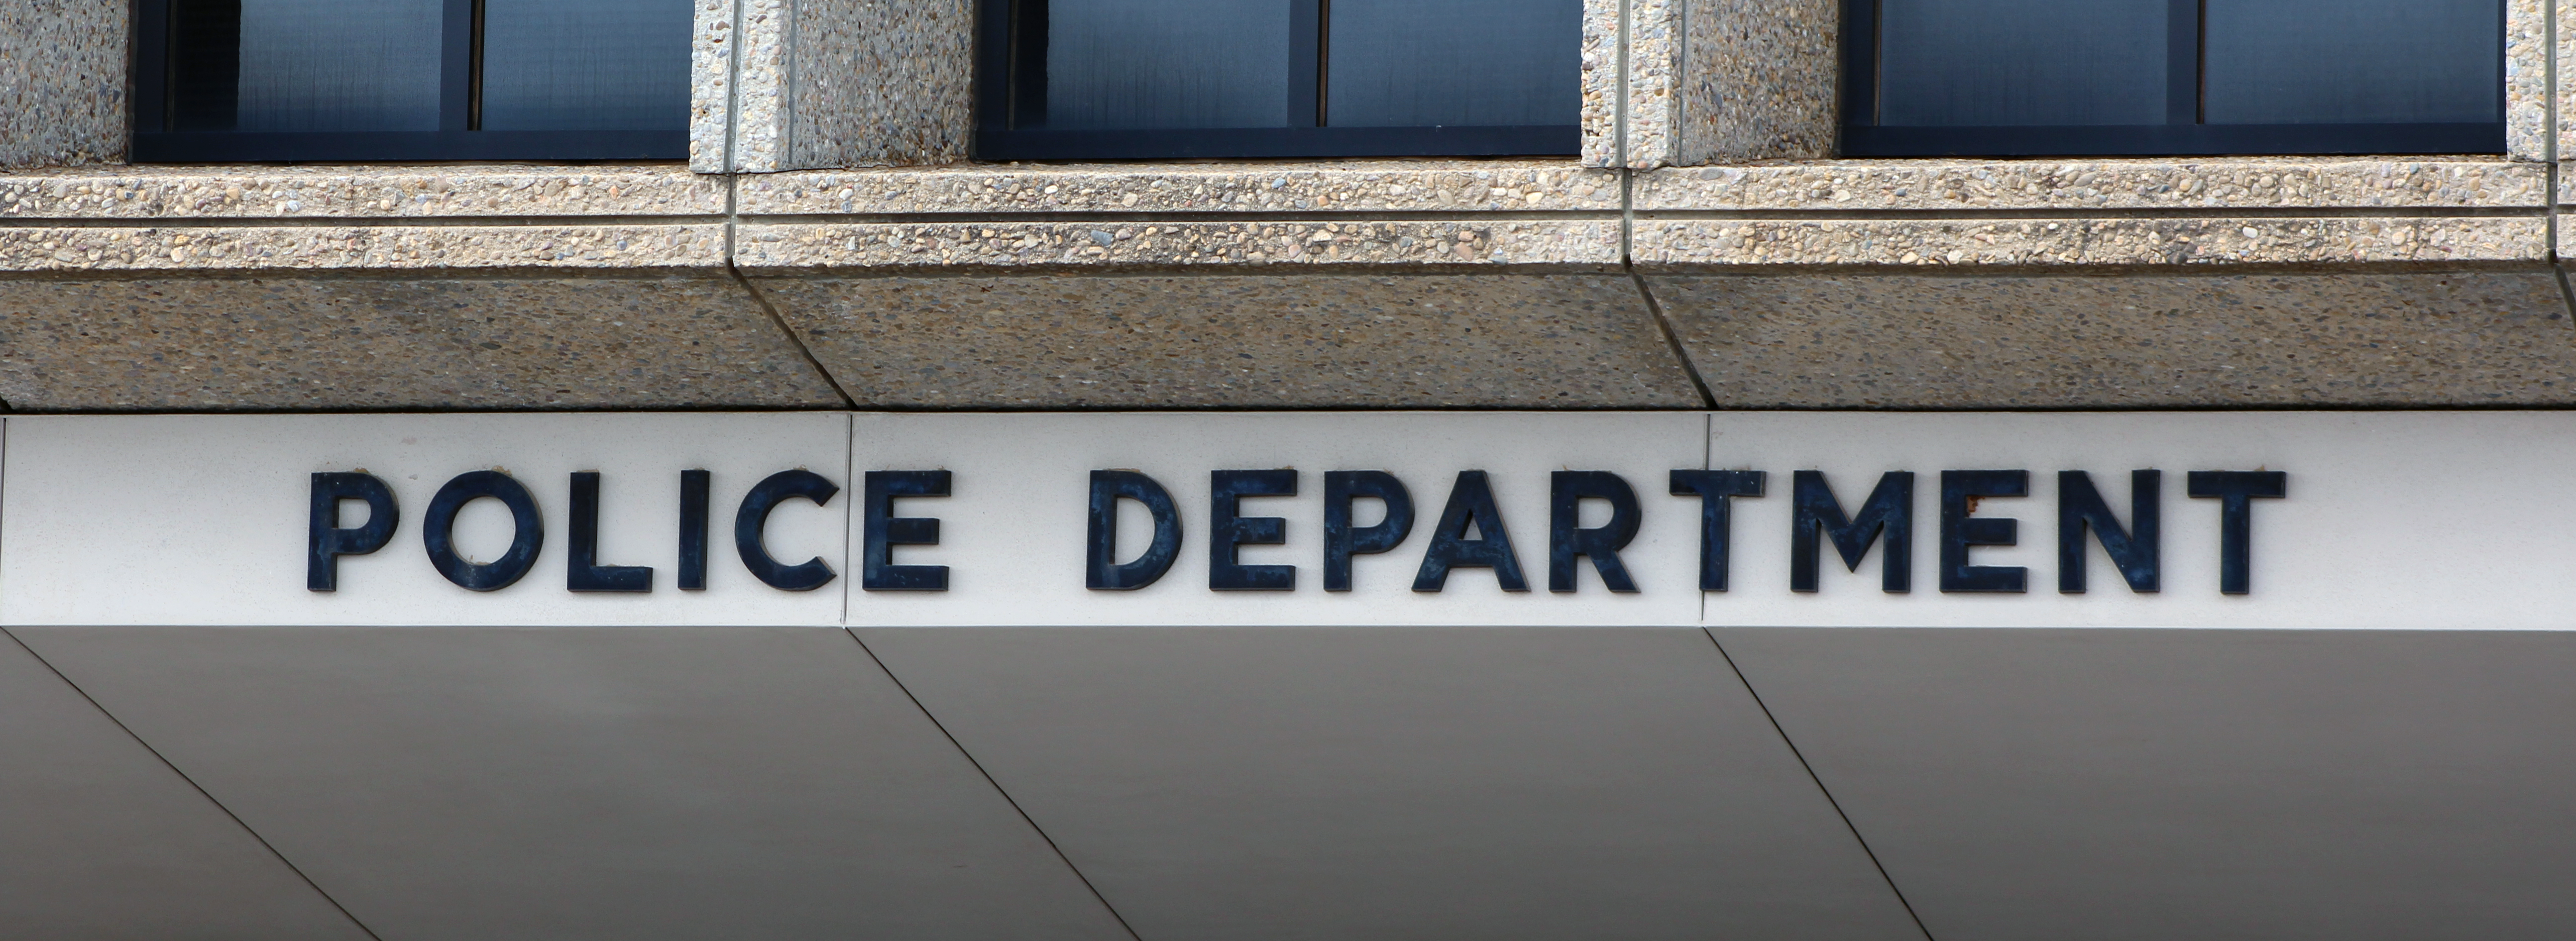 police-department-cropped